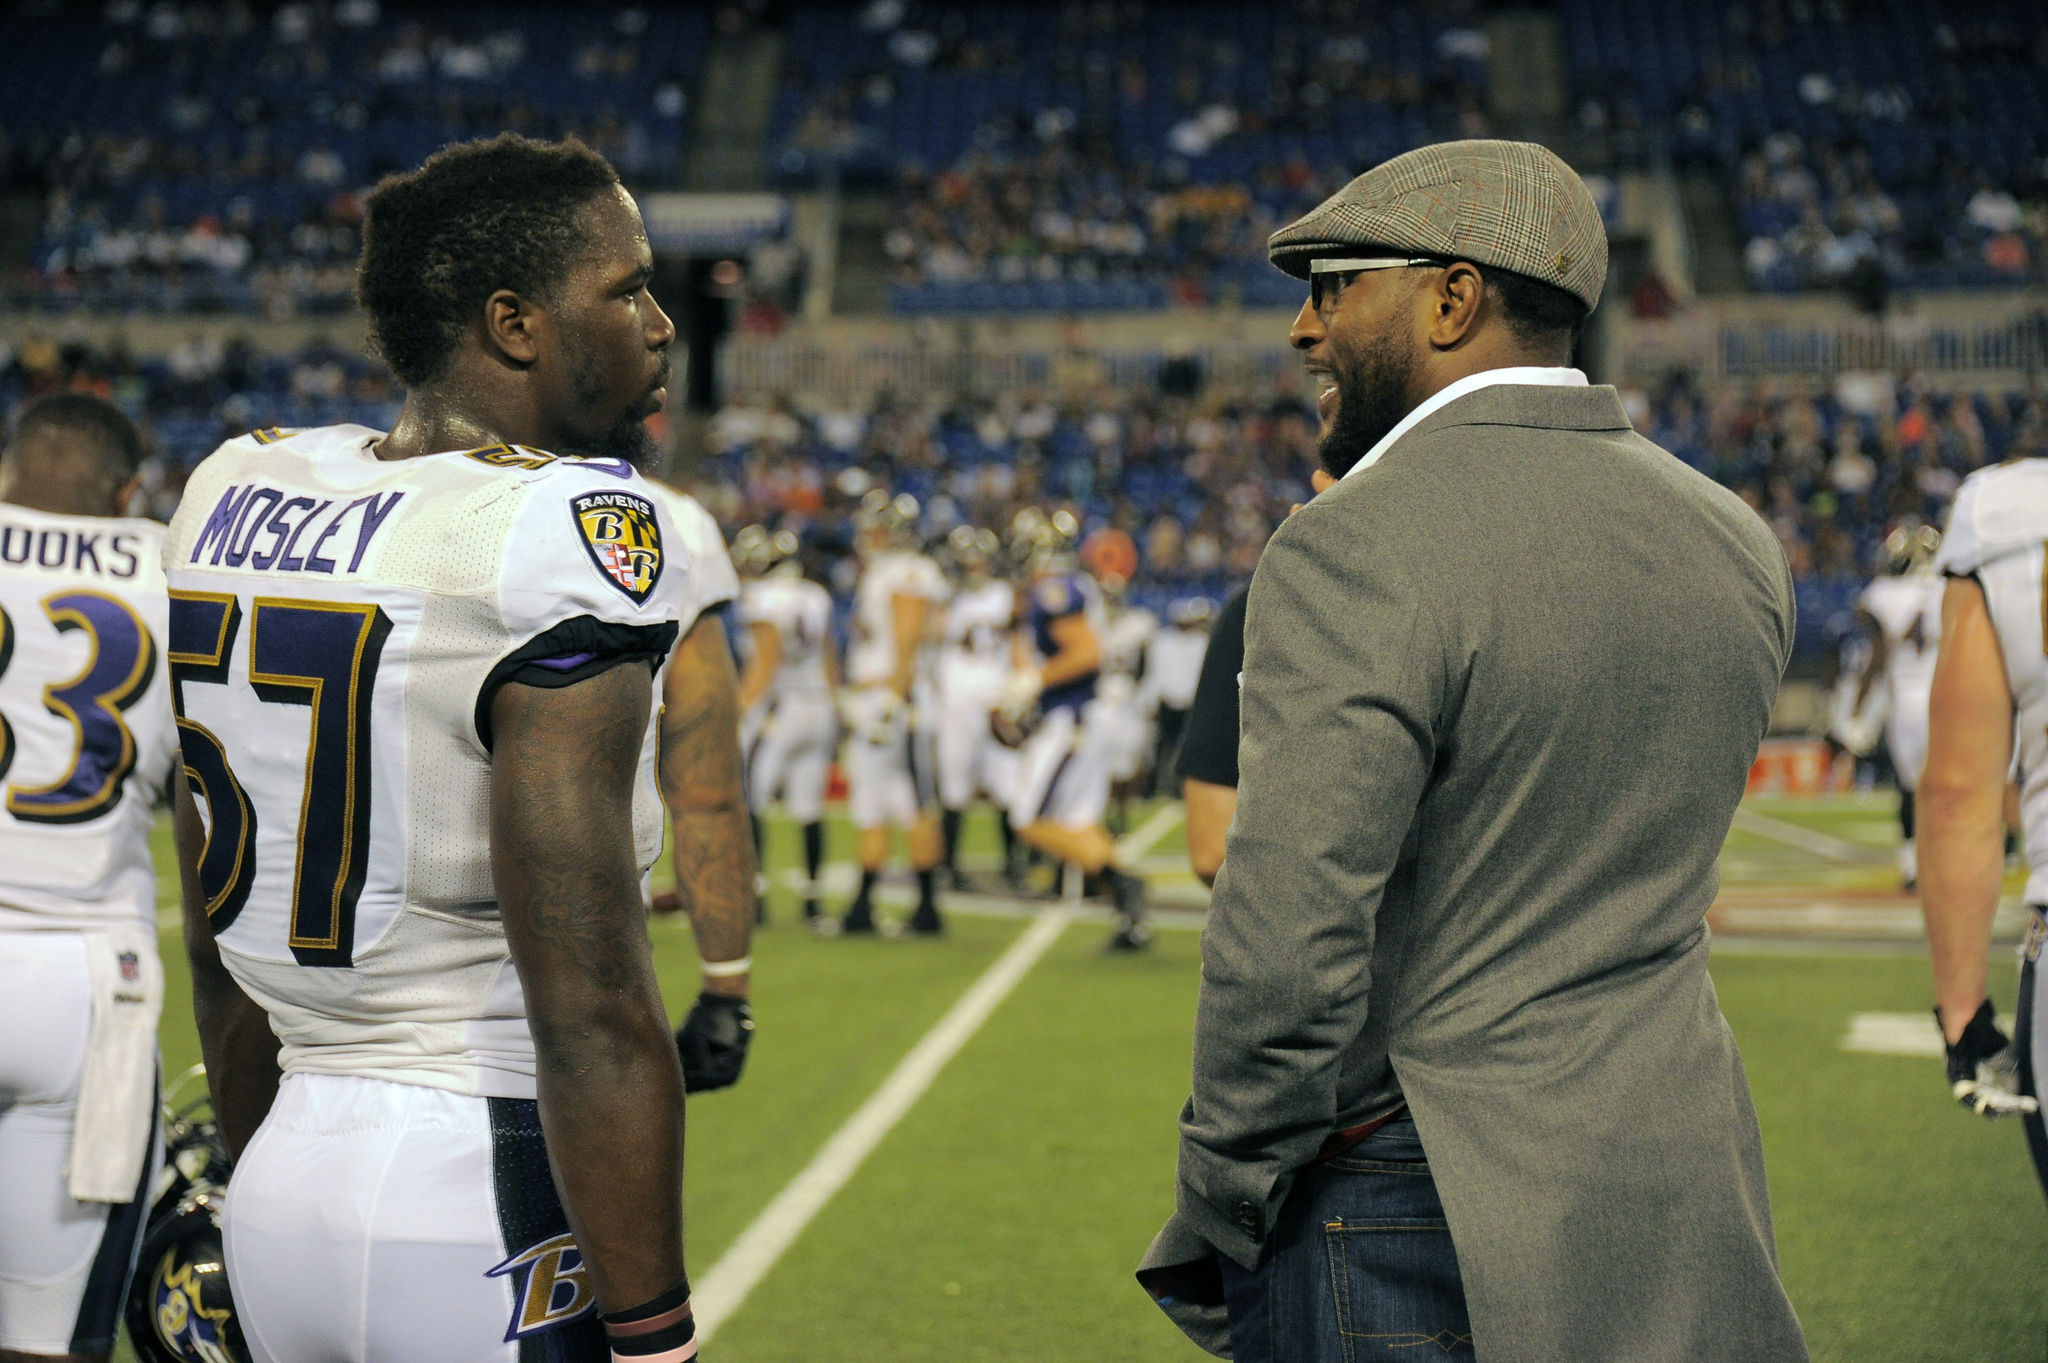 Ravens linebacker C J Mosley plays in Ray Lewis shadow but